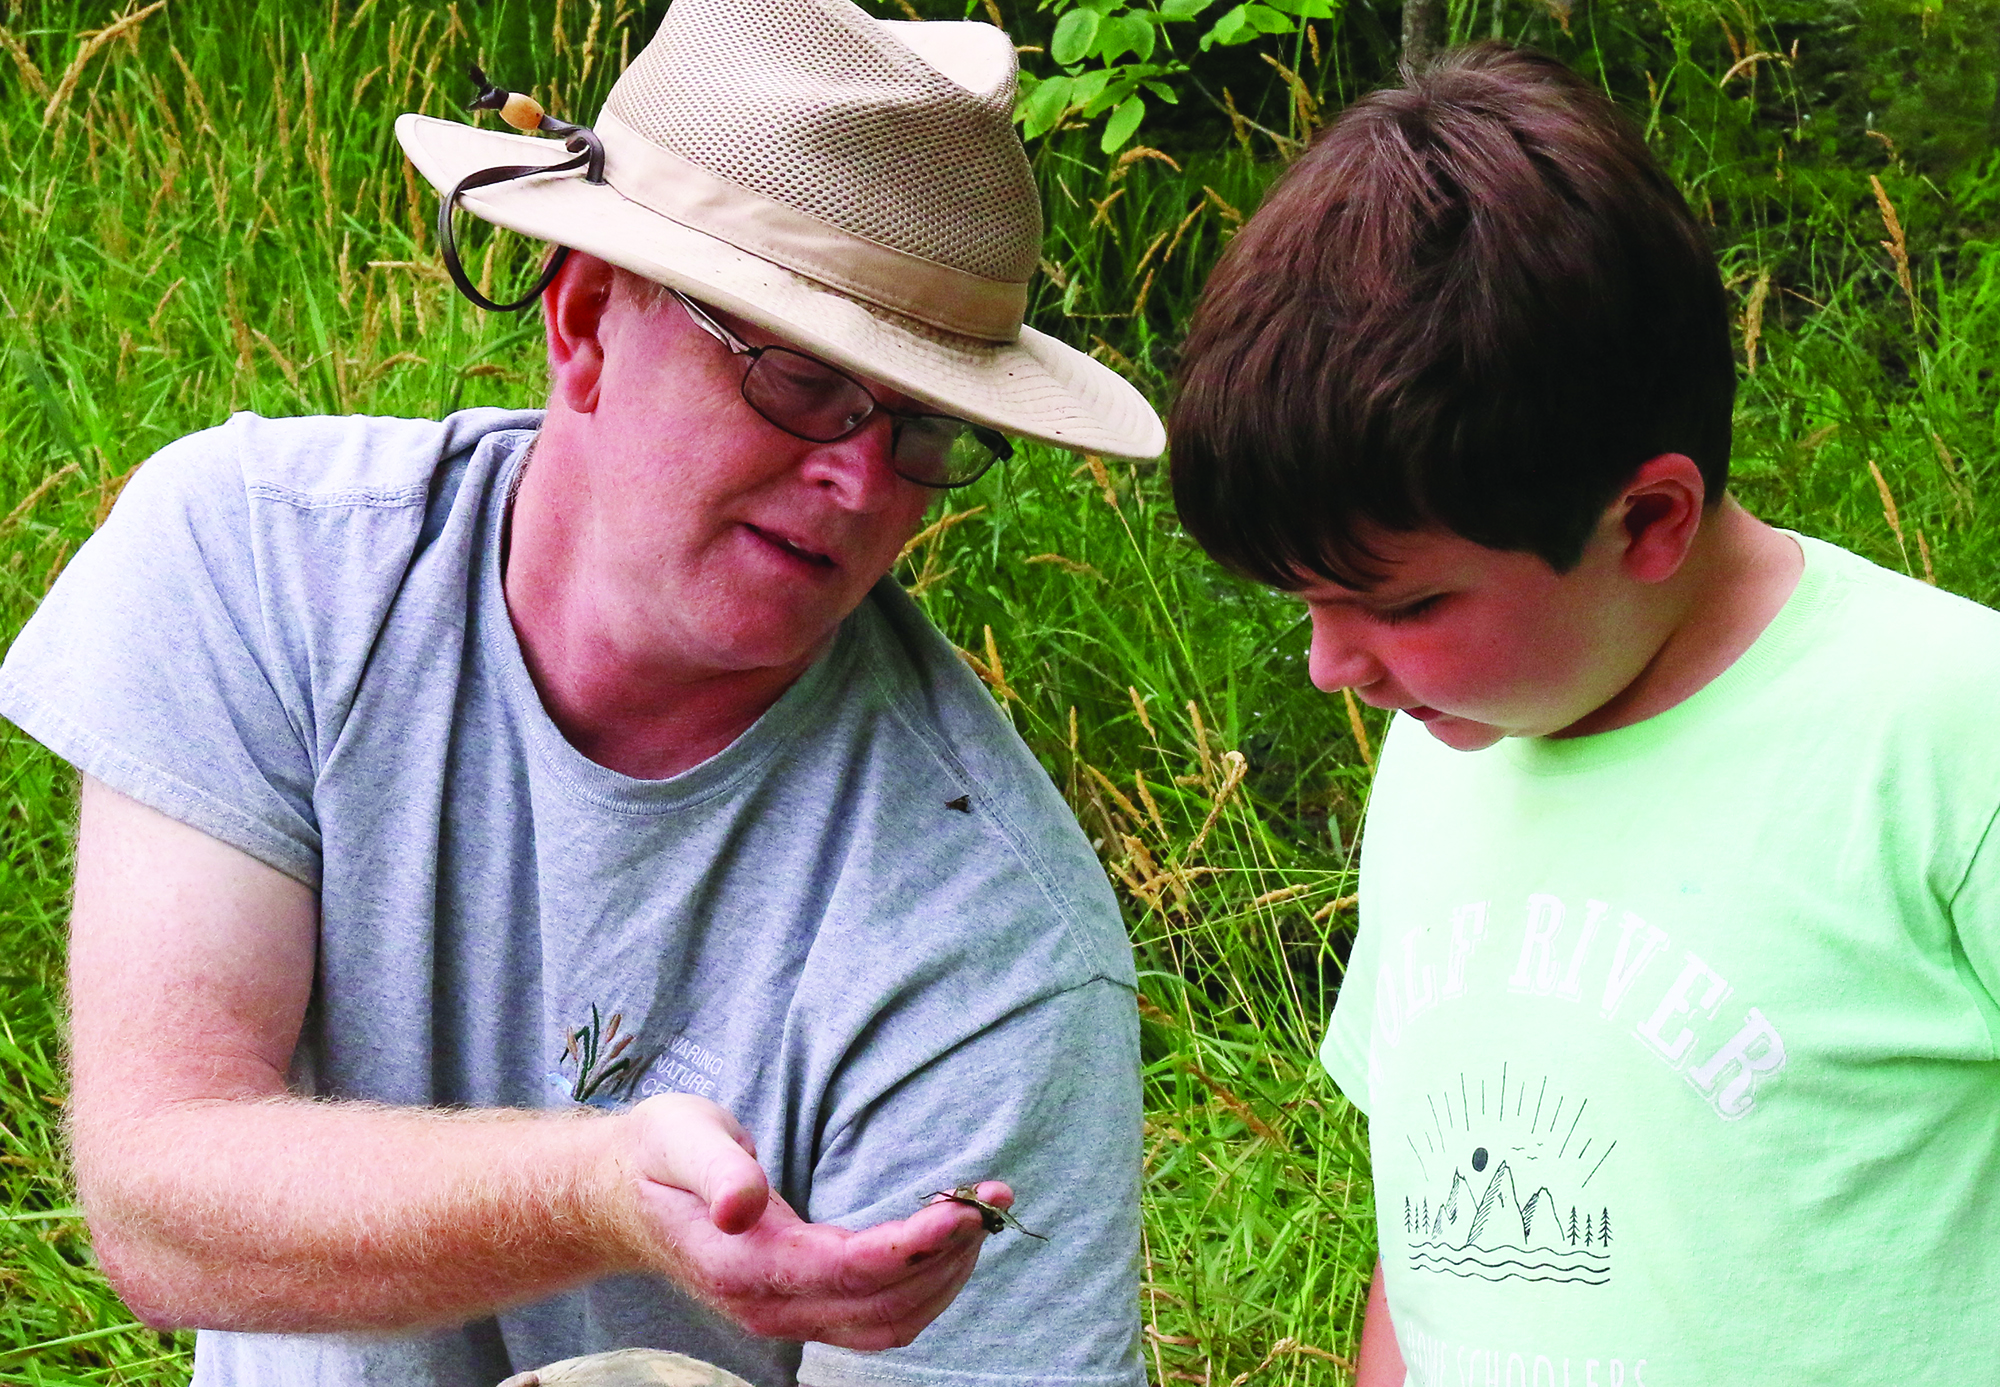 Tim Ewing talks about water insects with Matthew Briggs at Camp Creepy Crawly Critters at the Navarino Nature Center.Carol Ryczek | NEW Media